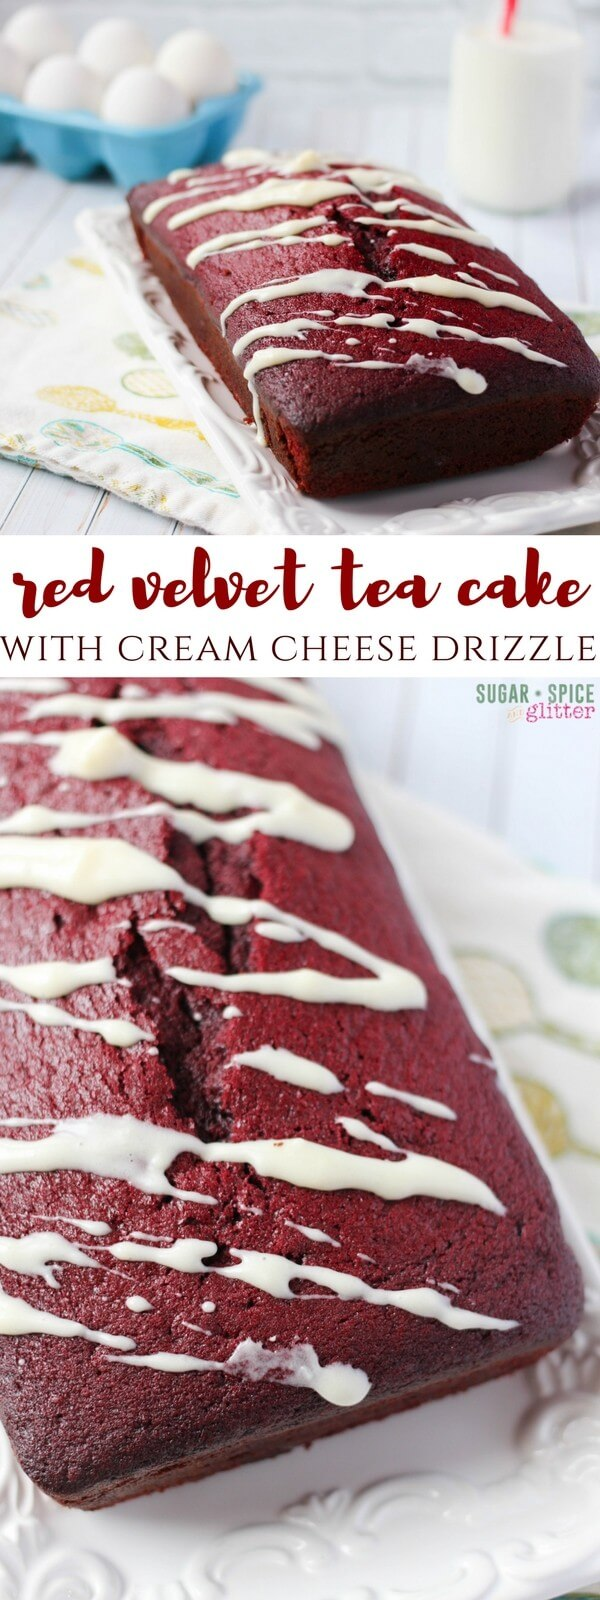 Easy and delicious red velvet tea cake with cream cheese drizzle - this cake uses natural cocoa powder to achieve it's bright red color, you don't even have to use food coloring!